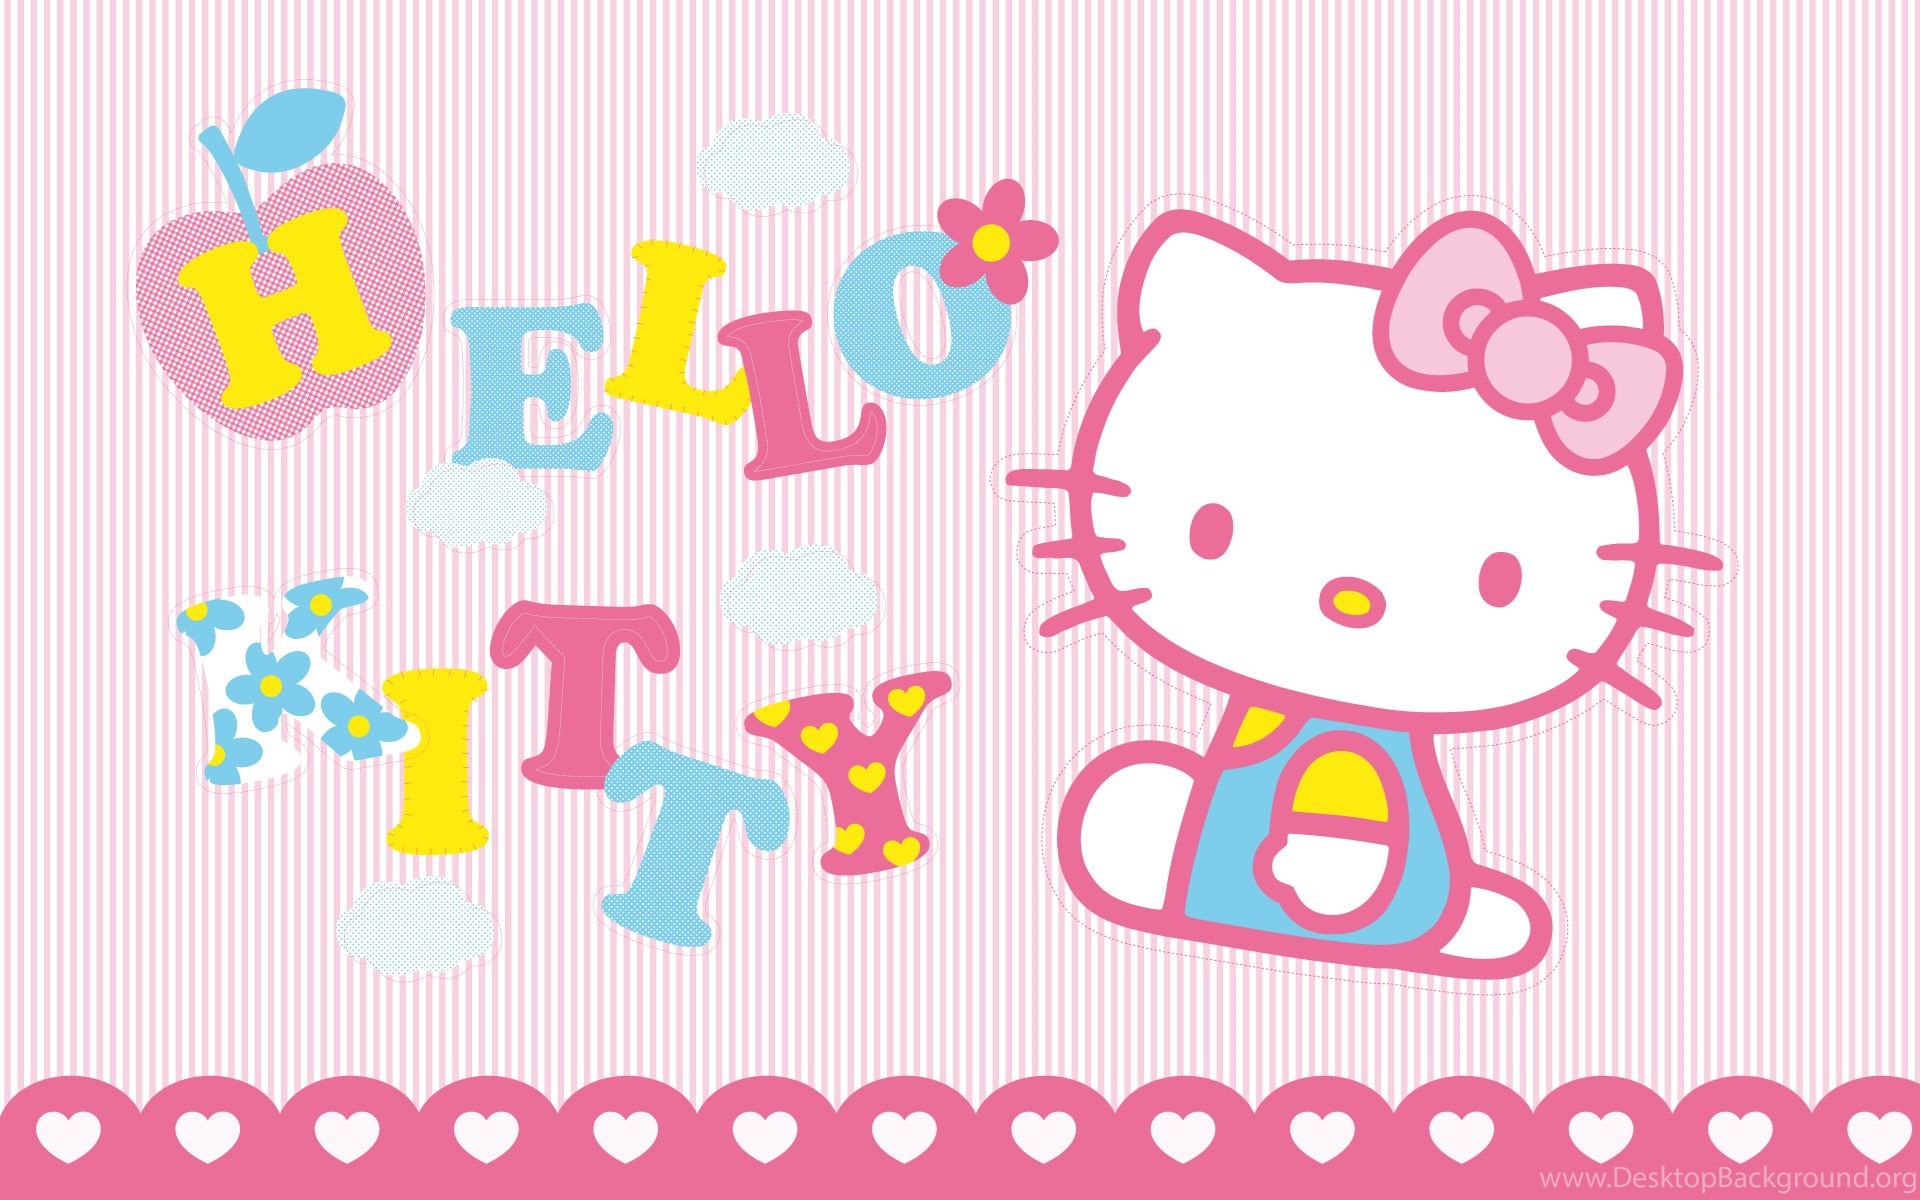 Cool Wallpaper Hello Kitty Ipad - 879308_ipad-wallpapers-hd-hello-kitty-images_1920x1200_h  Image_232757.jpg